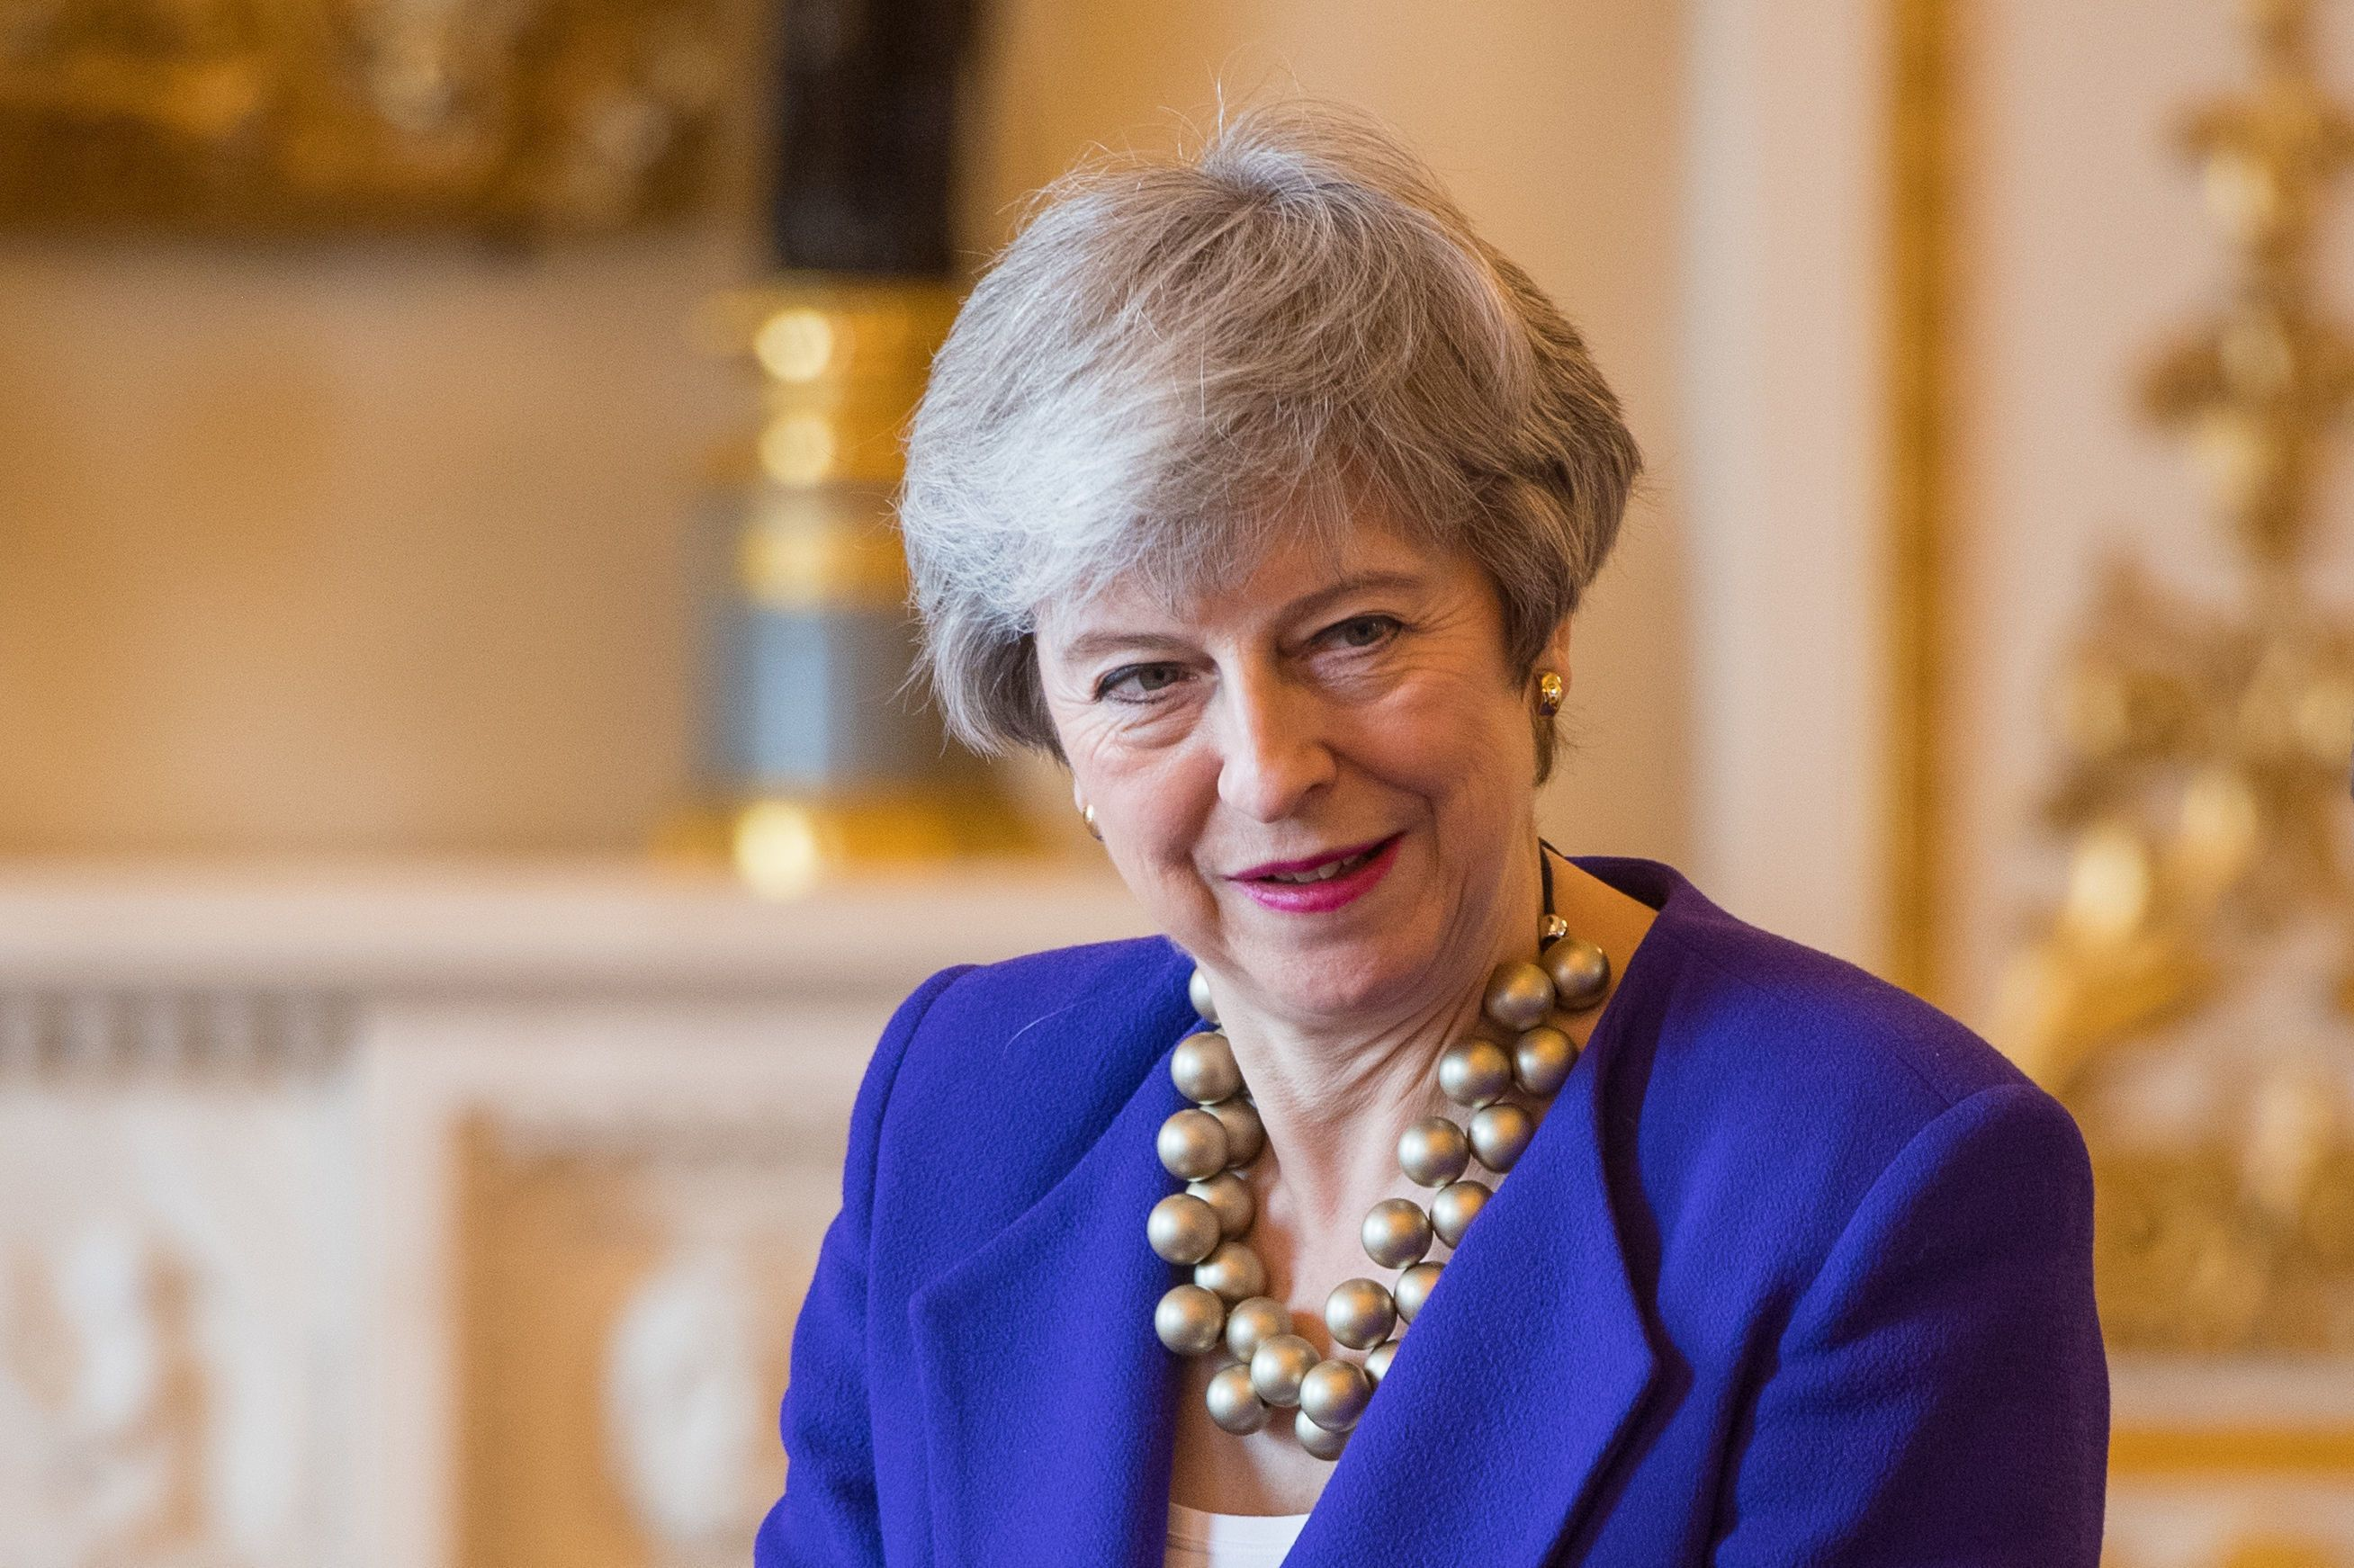 Theresa May's Brexit deal will come before MPs again